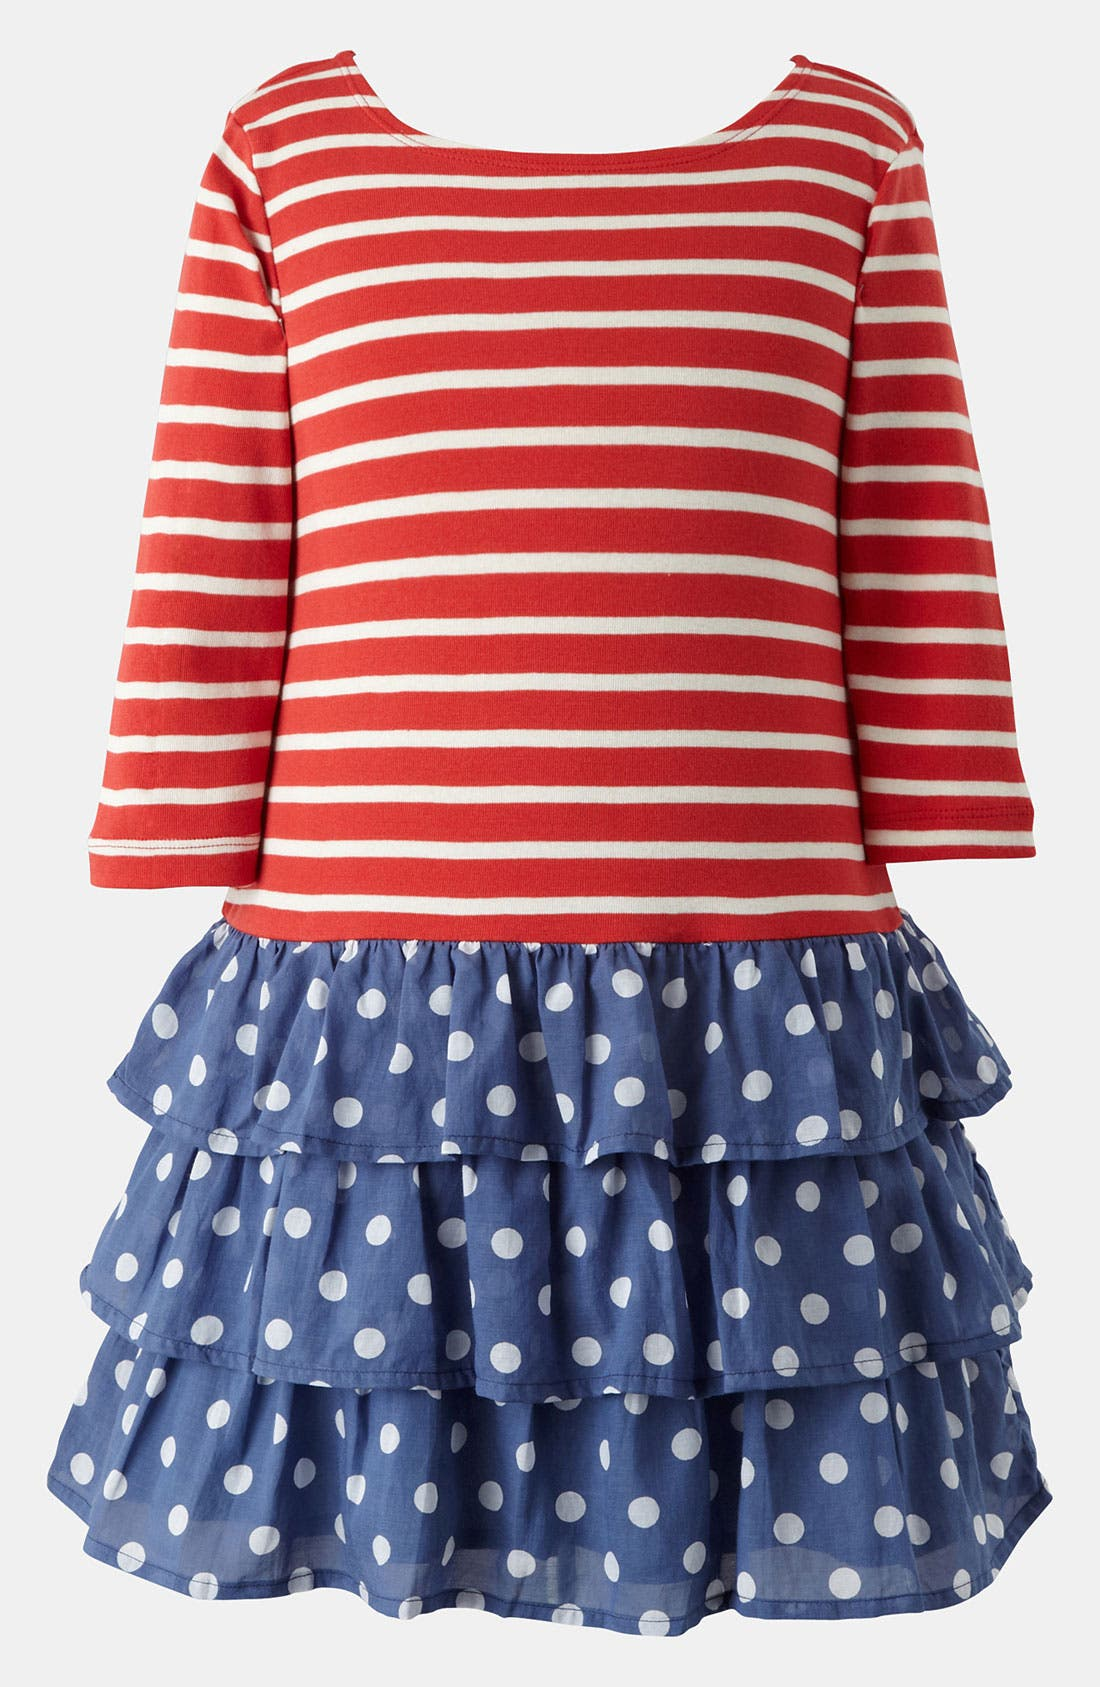 Alternate Image 1 Selected - Mini Boden 'Stripy' Ruffle Dress (Little Girls & Big Girls)